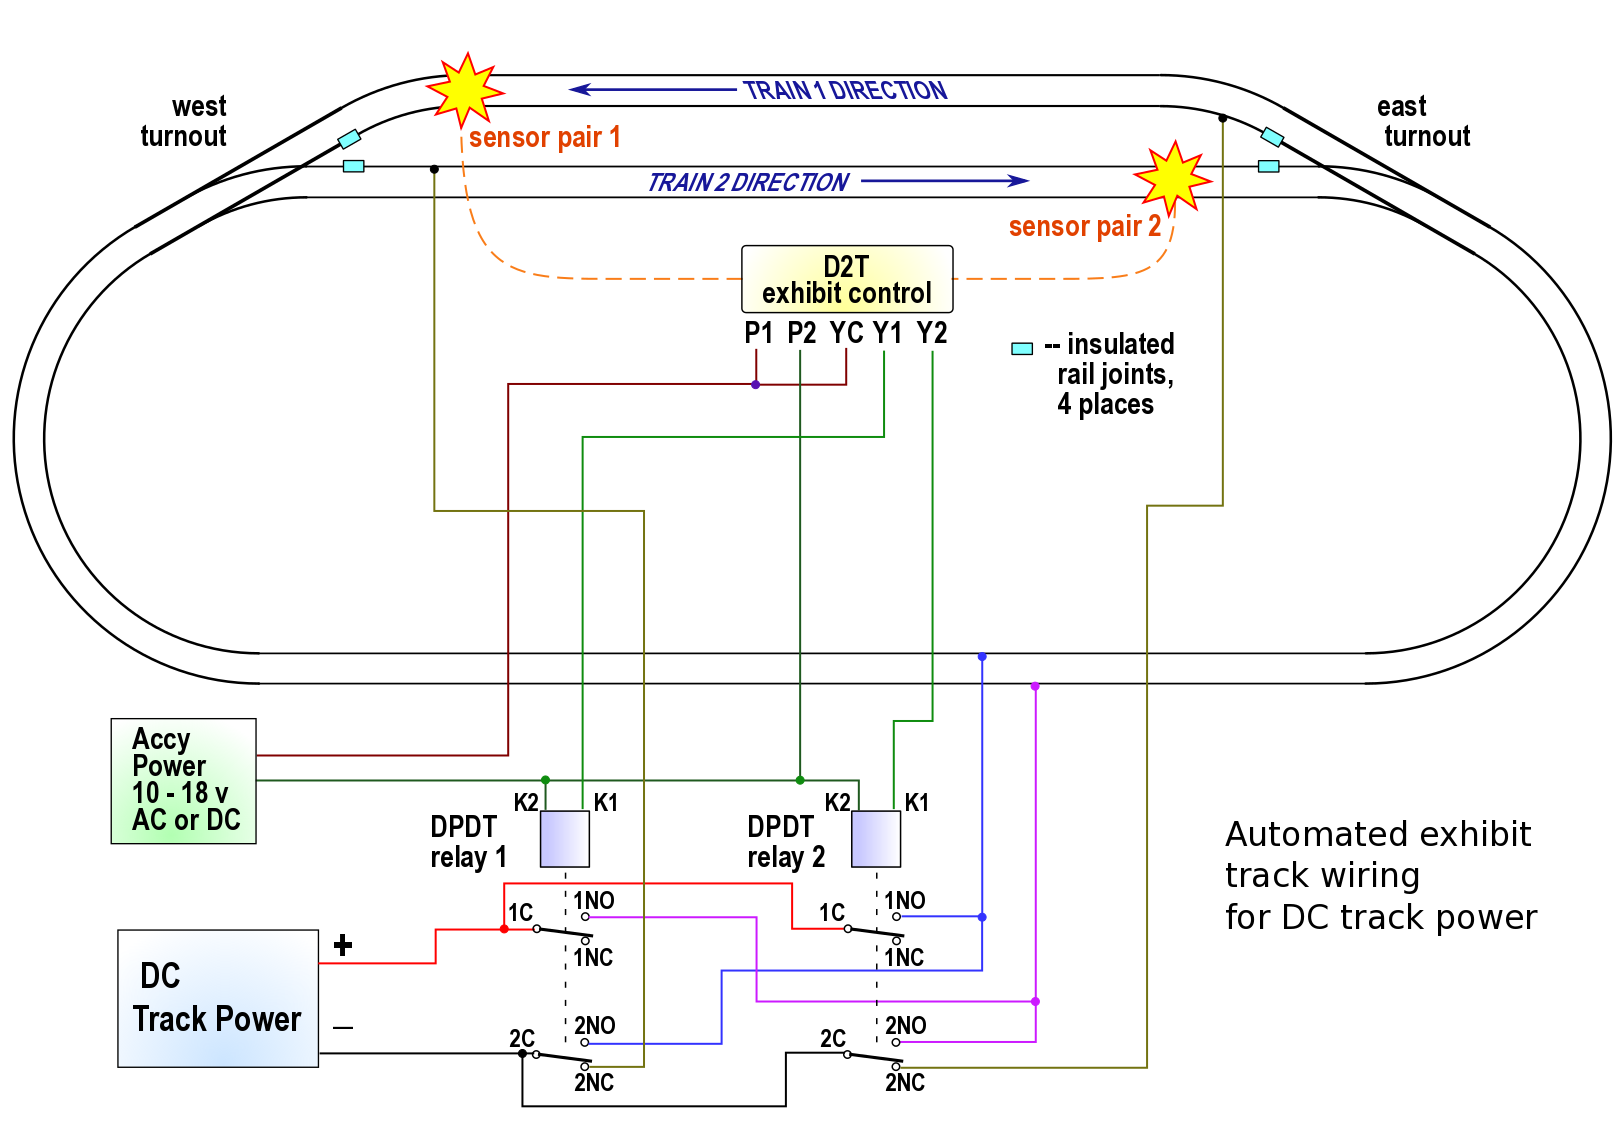 small resolution of dpdt switch wiring diagram for wye